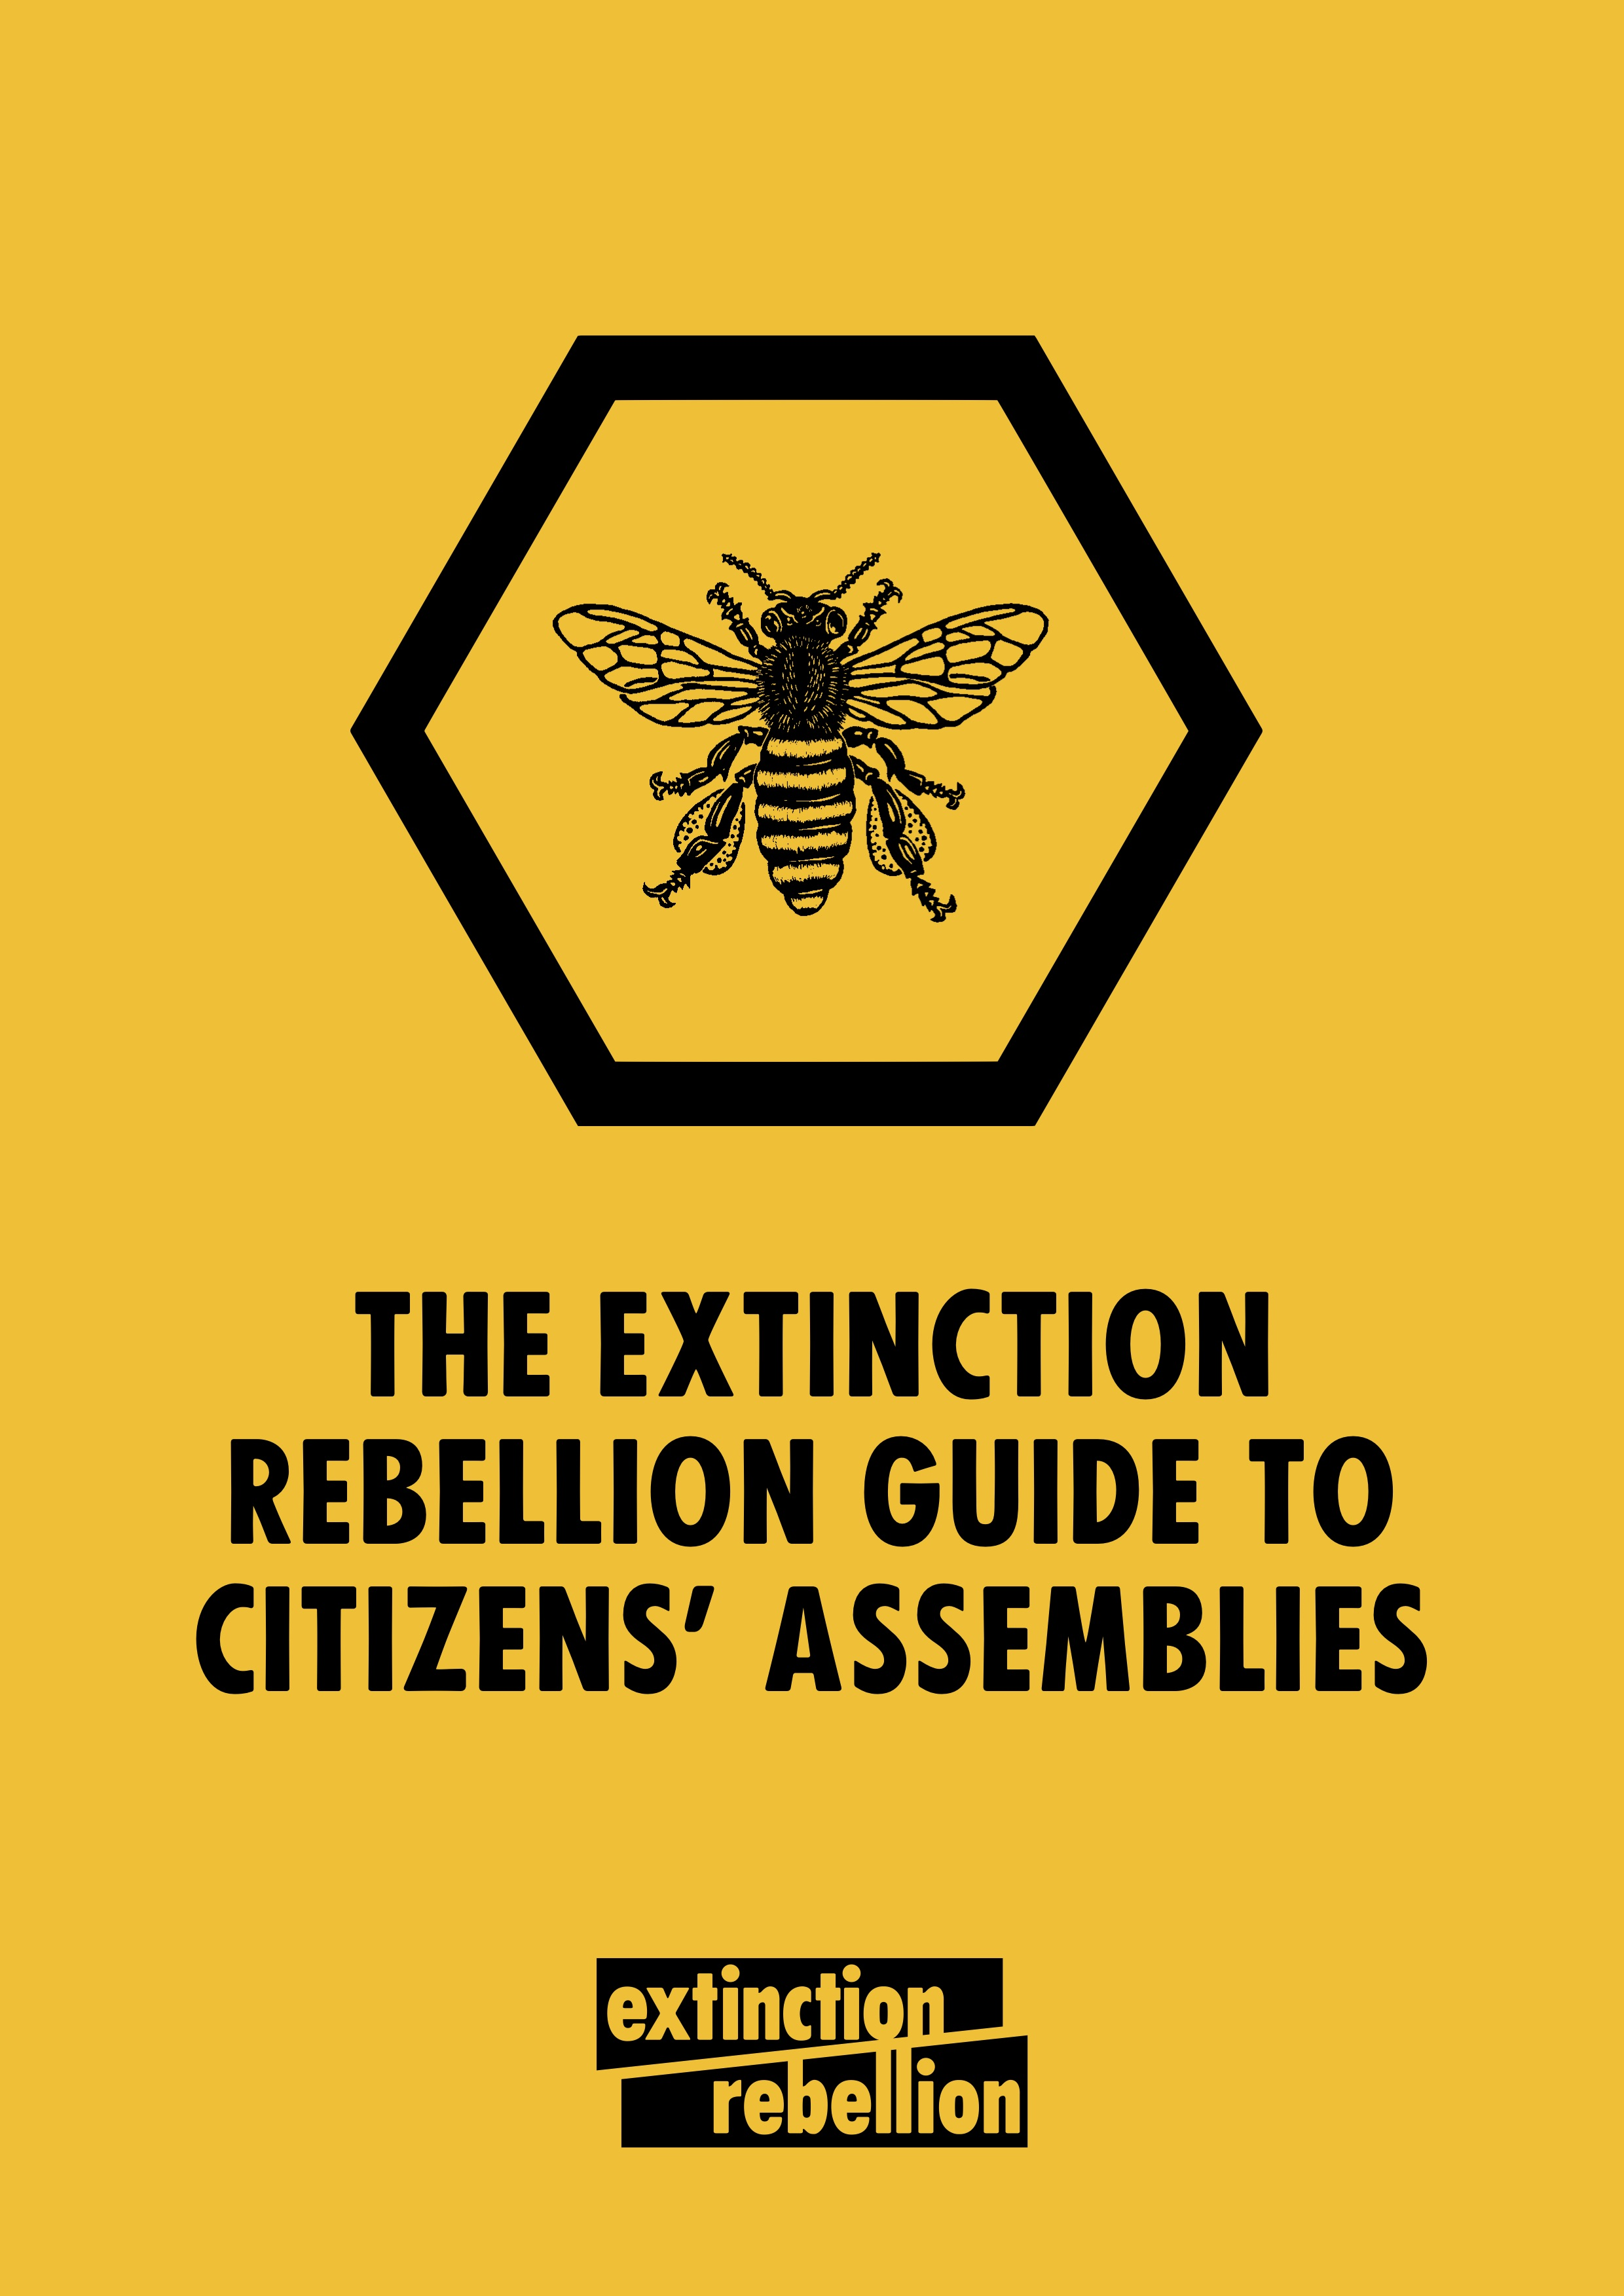 The-Extinction-Rebellion-Guide-to-Citizens-Assemblies-Version-1.1-25-June-2019.jpg